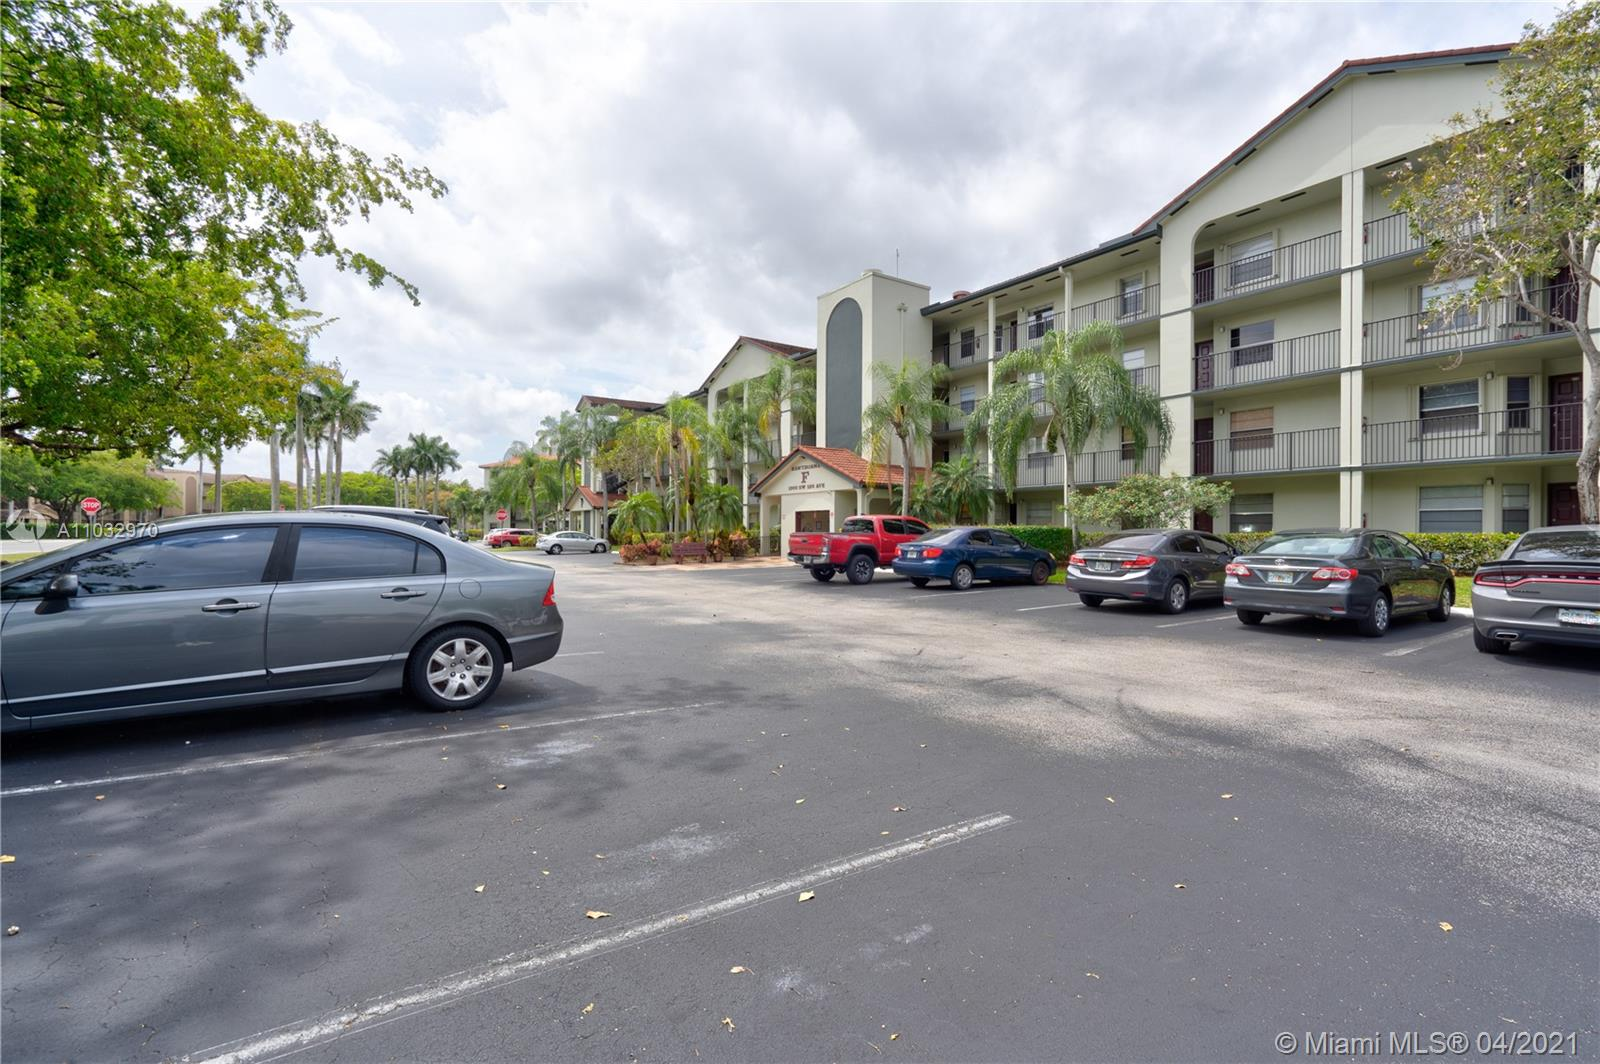 1300 SW 130th Ave Unit 205 F, Pembroke Pines, Florida 33027